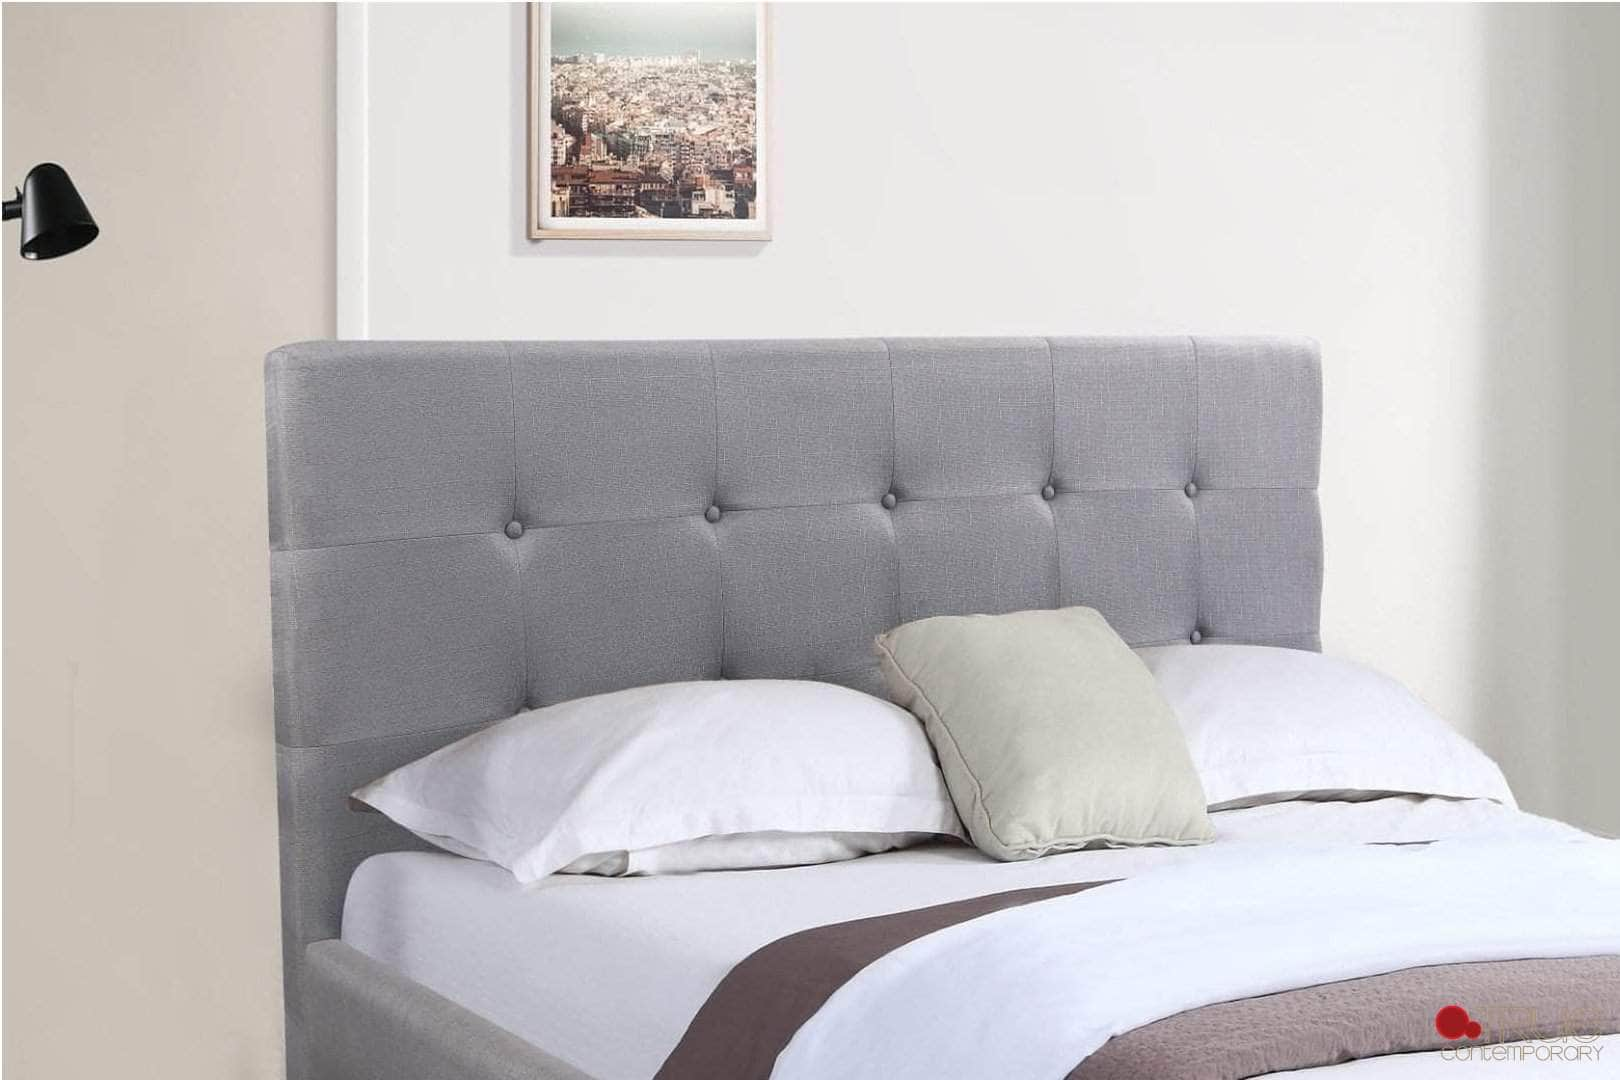 Victoria Grey Tufted Linen Platform Bed with Two Storage Drawers Headboard